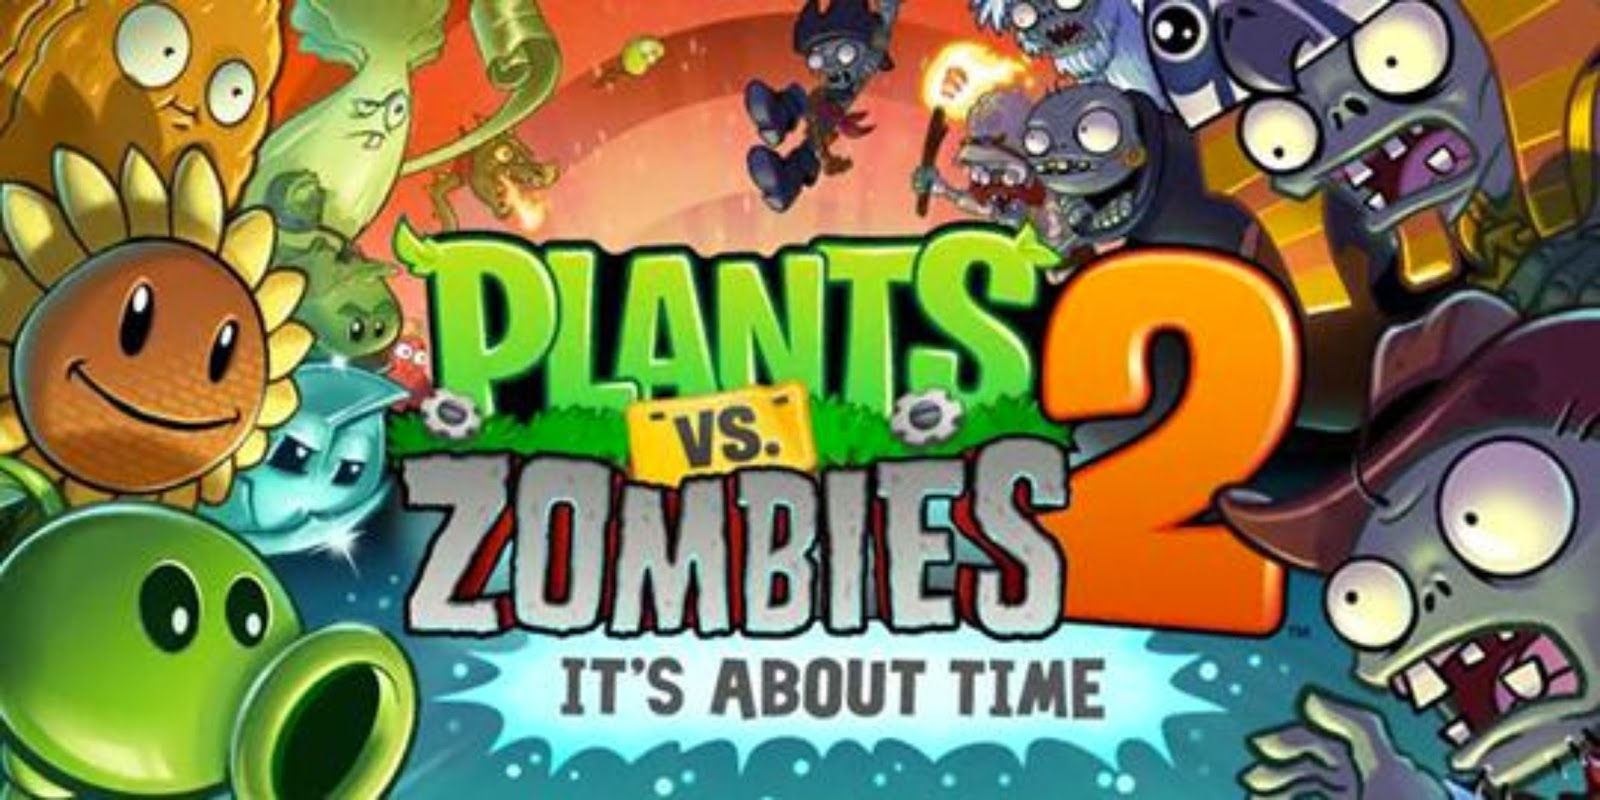 play plants vs zombies 2 free full version